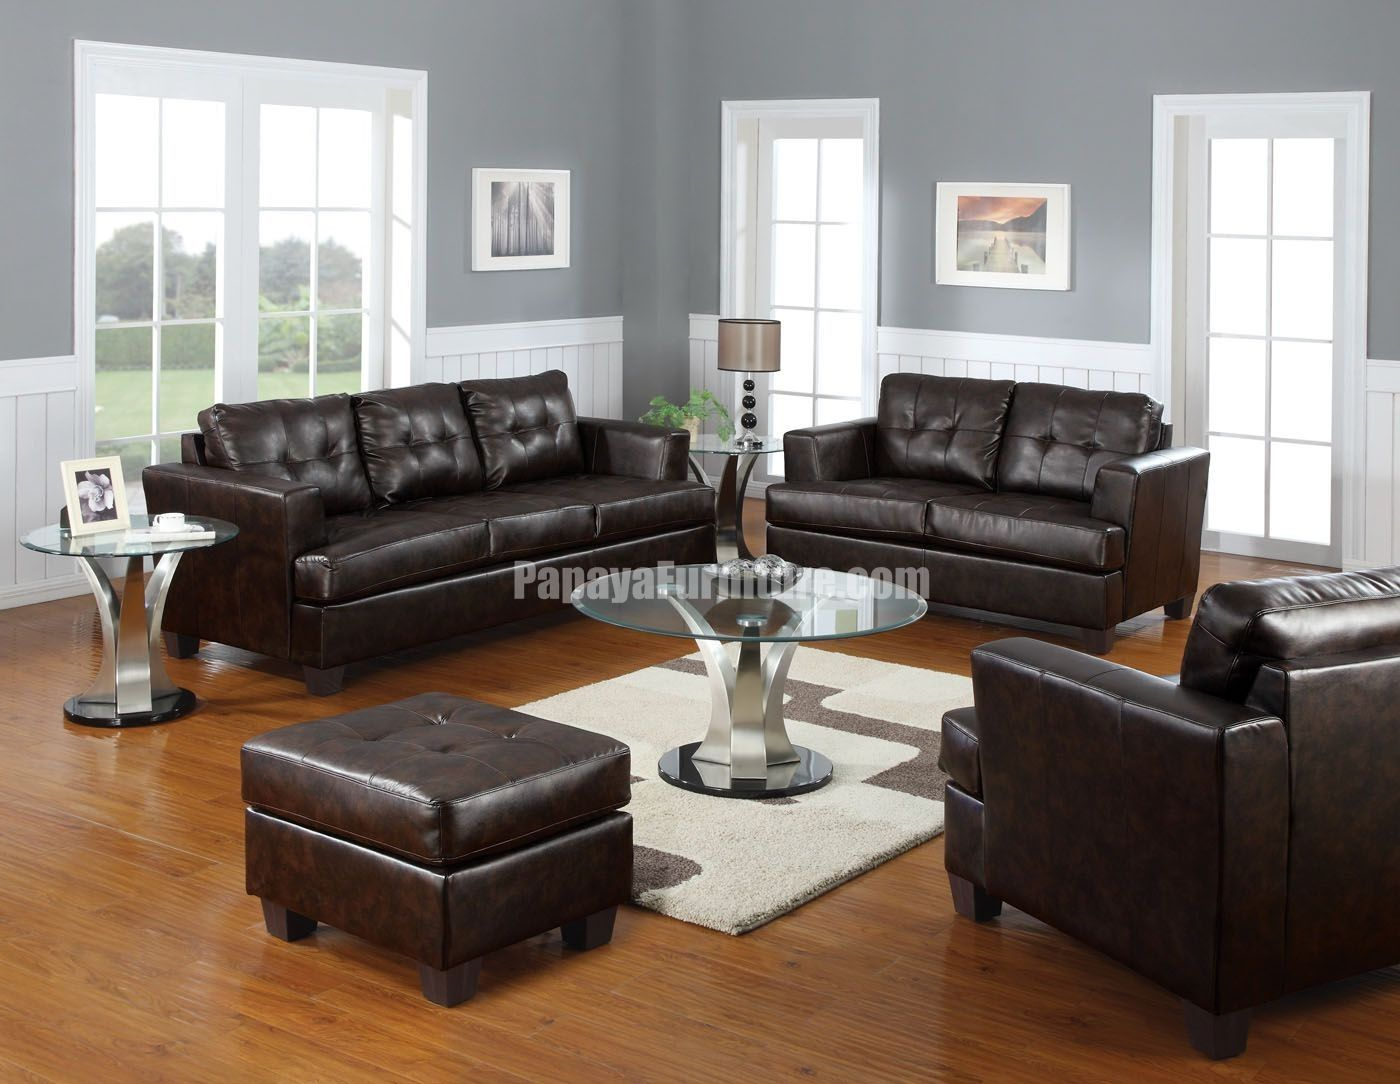 Dark Brown Couch Dark Brown Couch Decorating Ideas Dark Brown Leather